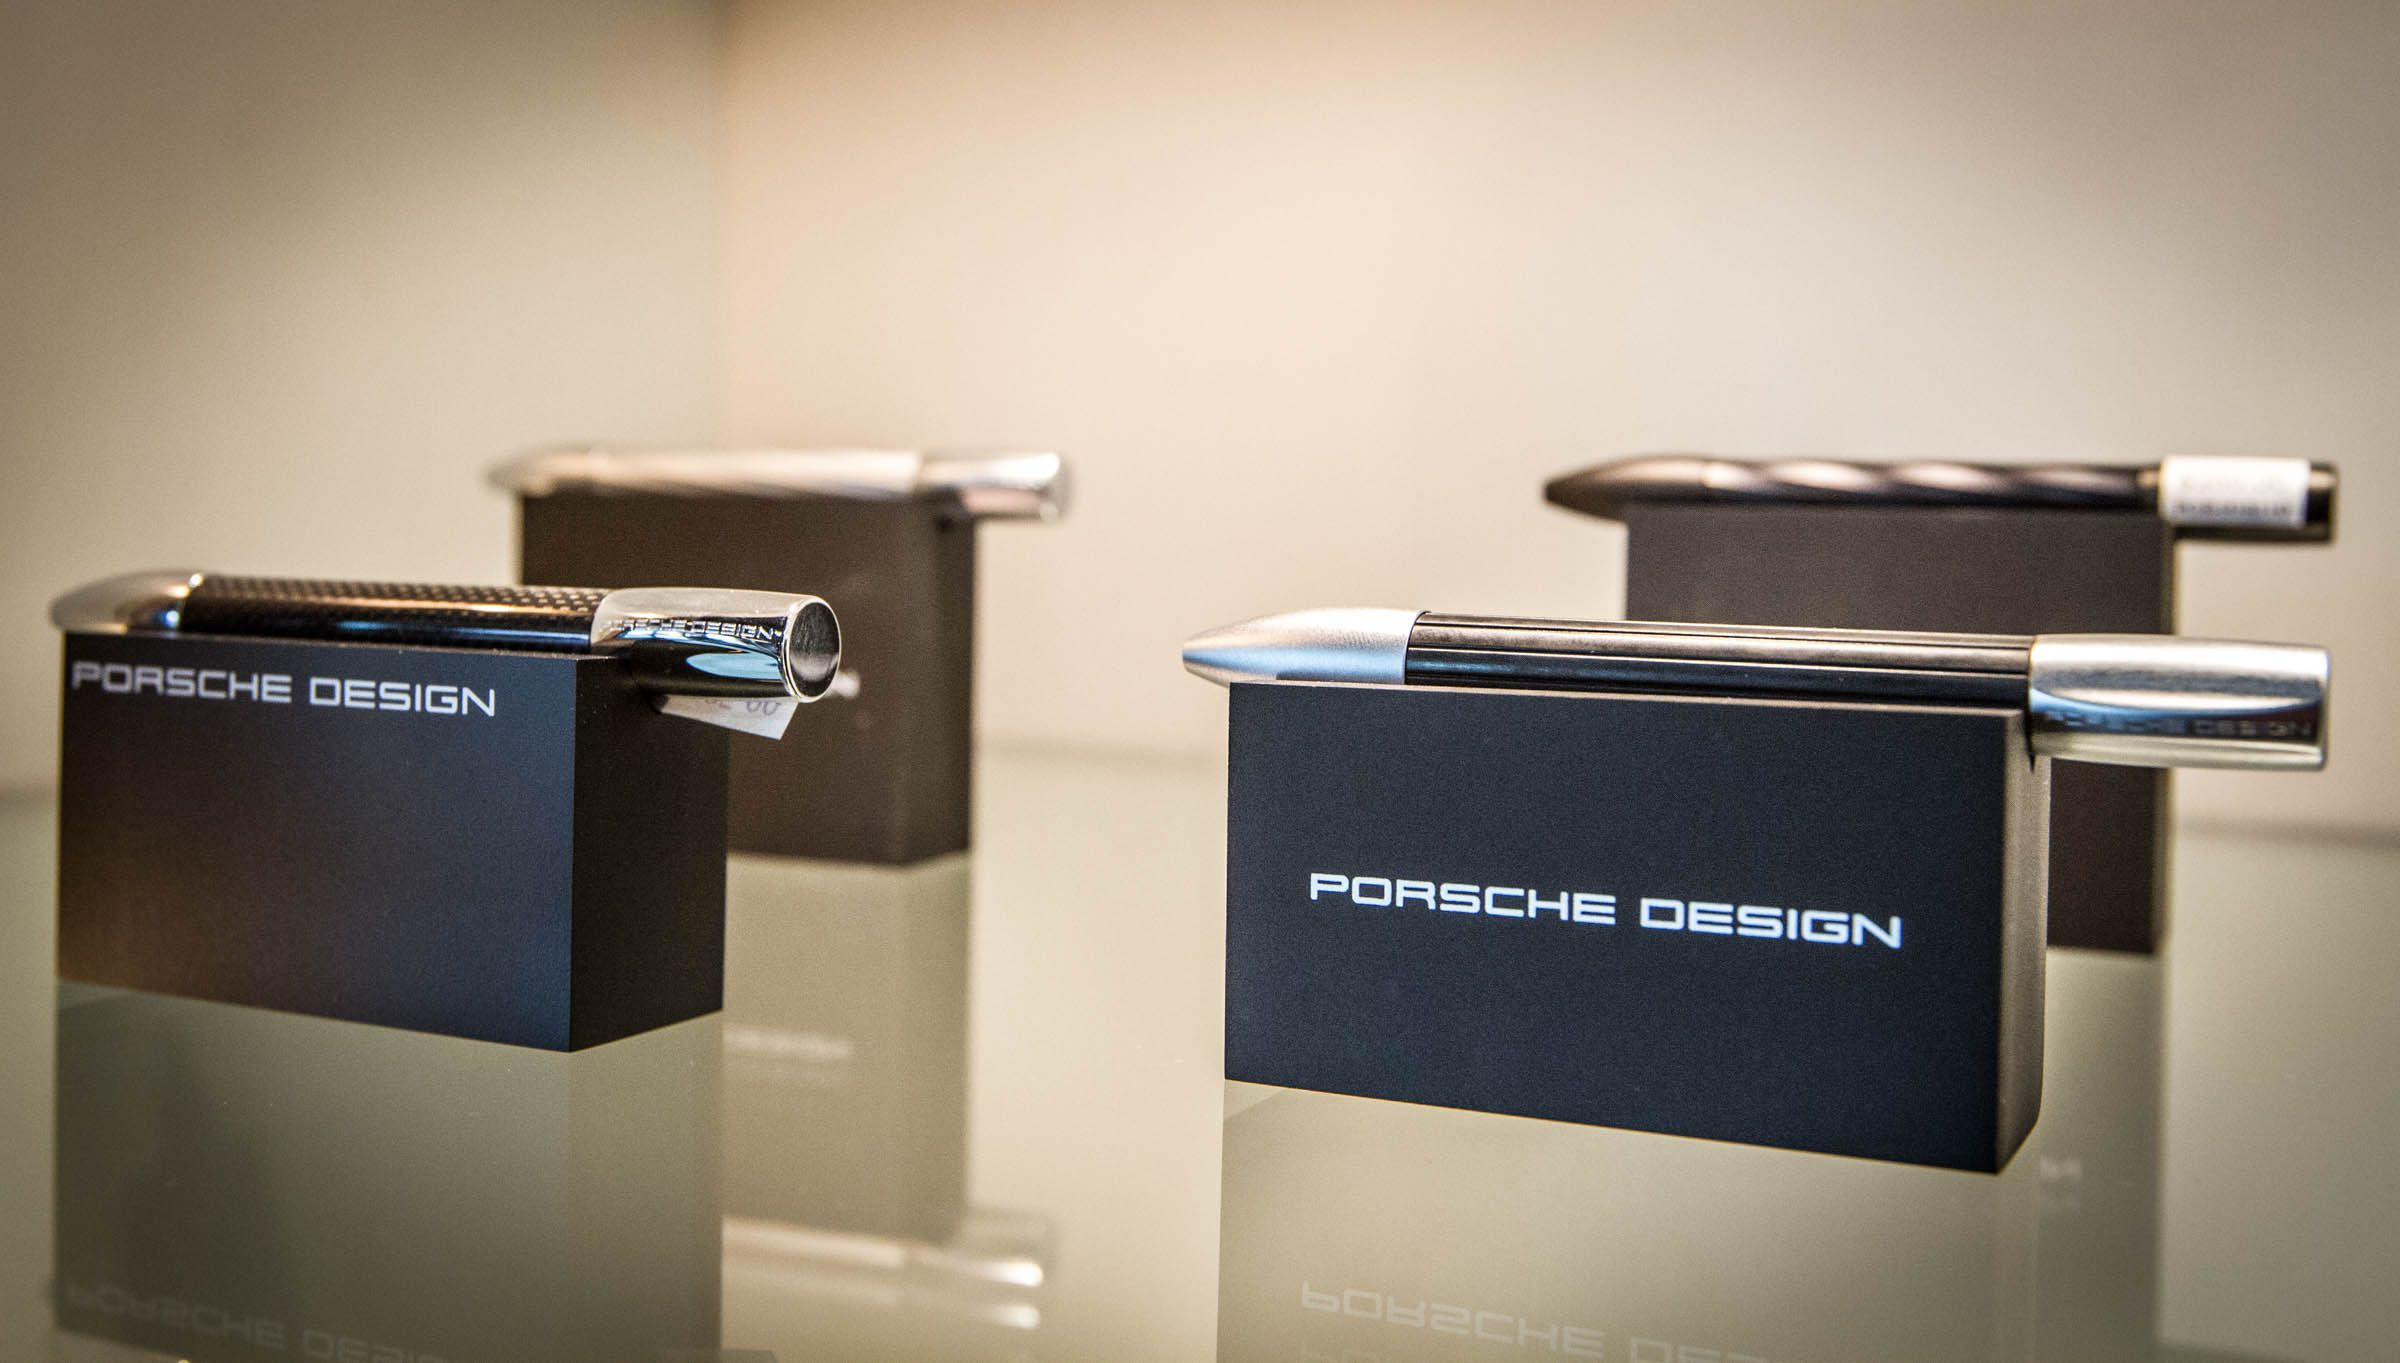 Porsche Design Pens : Great Gifts